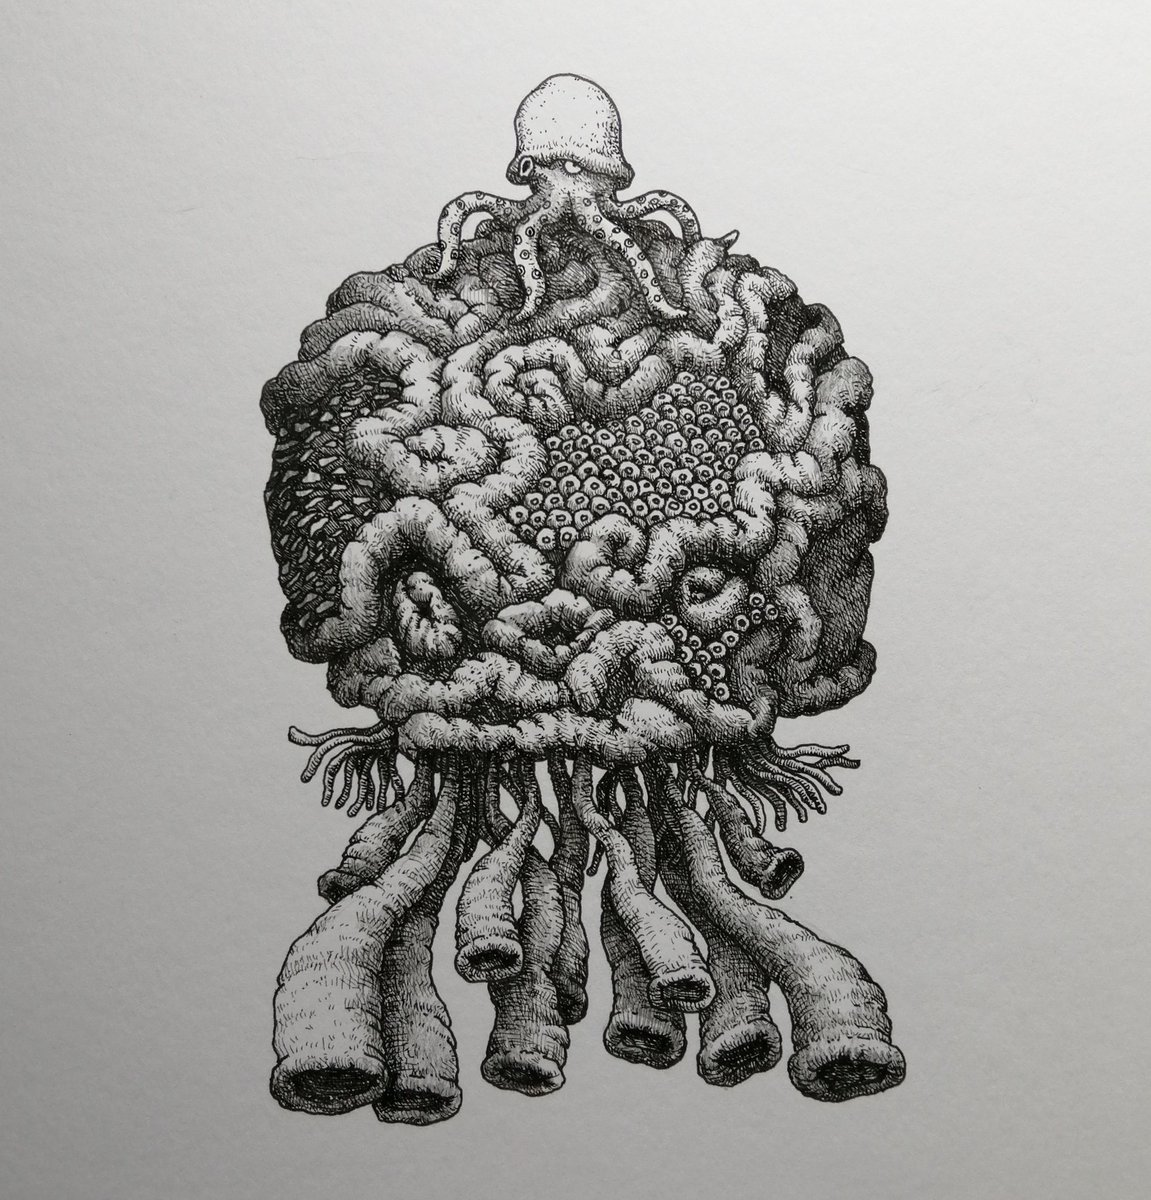 #blackinkart #character #characterdesign #comic #coral #drawing #fantasy #illustration #ink #inkillustration #inking #inktober #inktobercoral #inktober2020 #inktober2020coral #inktober52 #manga #monster #pencildrawing #staedtler #イラスト #キャラクター #珊瑚 #漫画 #일러스트 https://t.co/aUgLT3IlV1